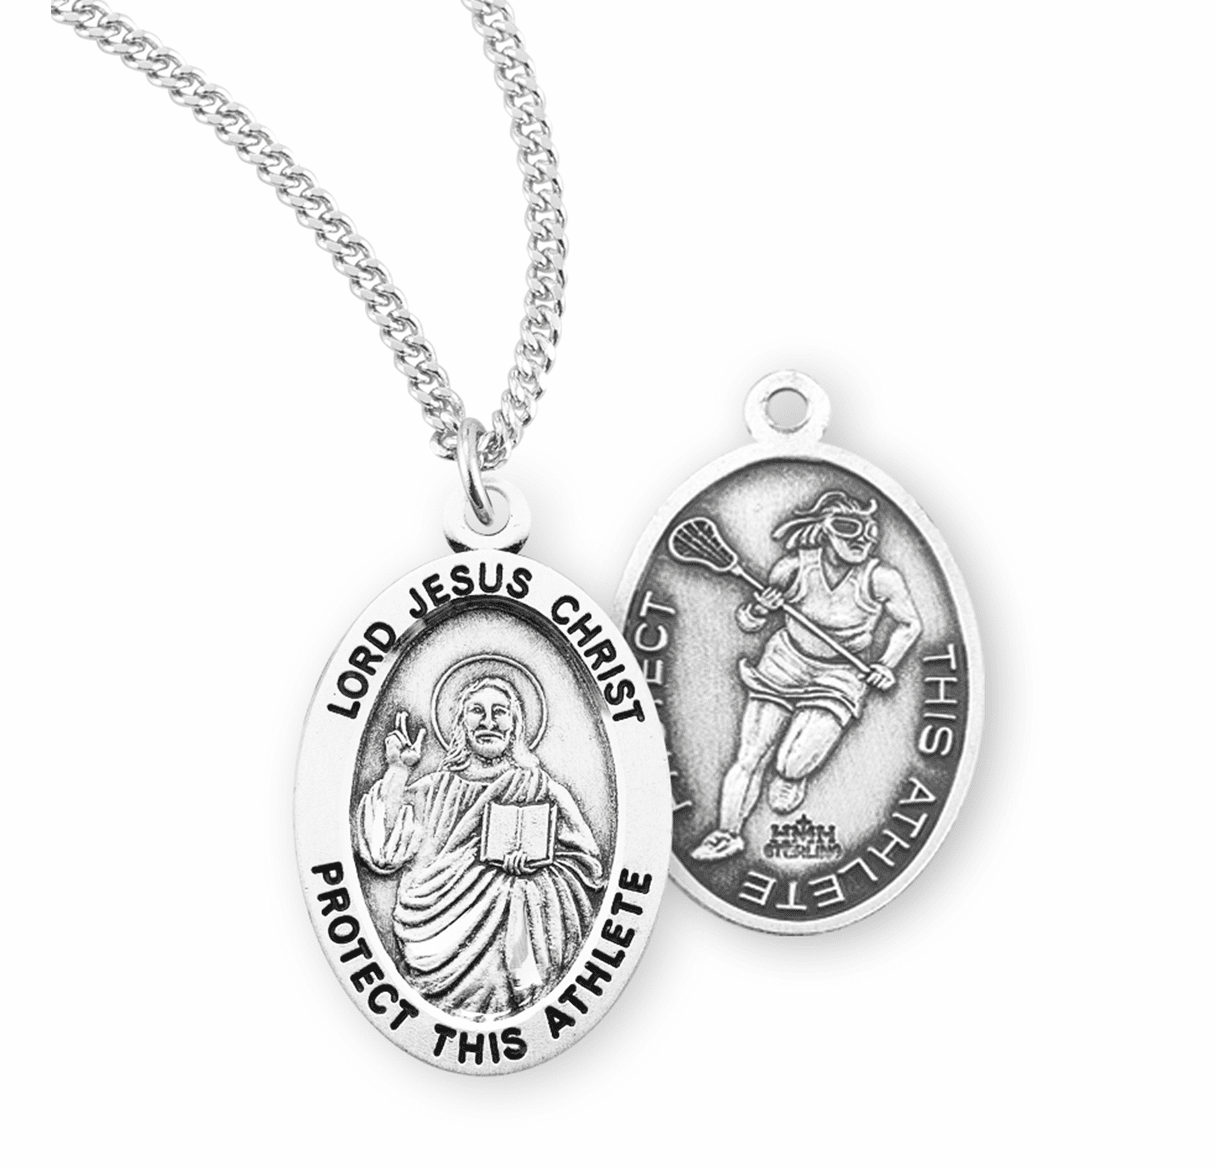 HMH Religious Lord Jesus Christ Female Lacrosse Sterling Silver Sports Necklace